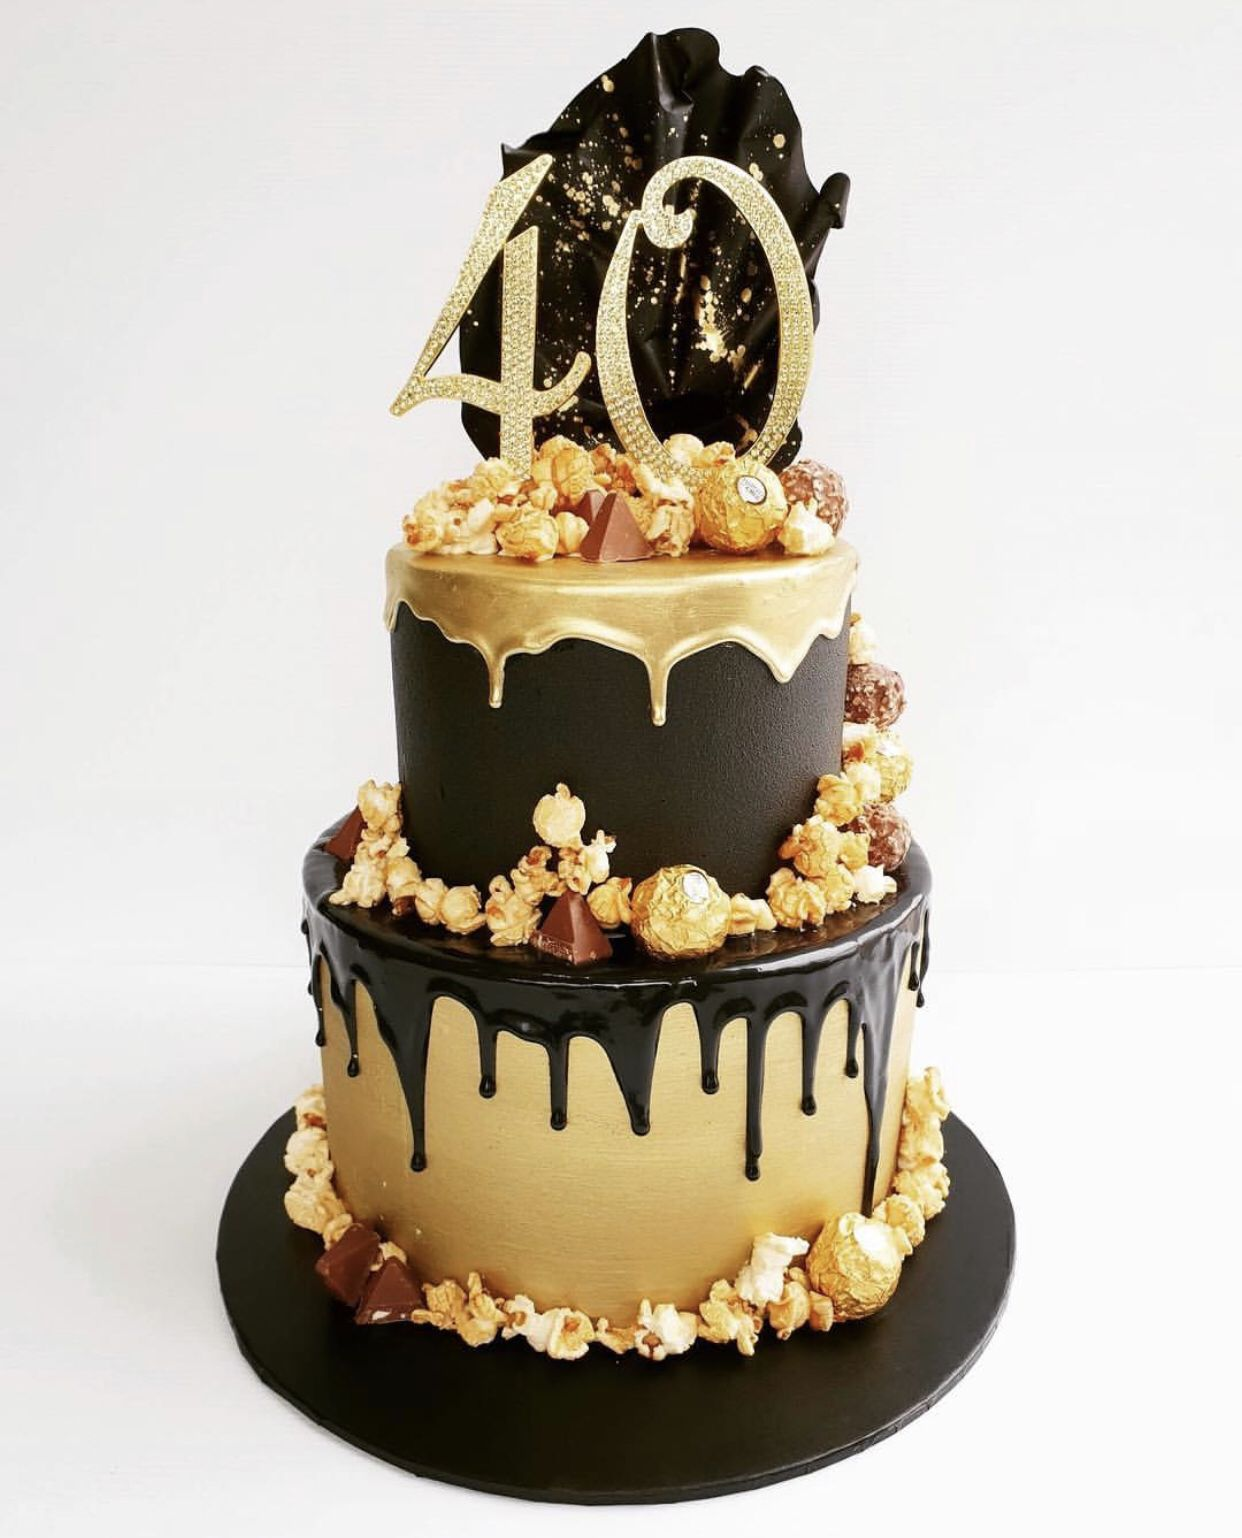 Two Tiers Of Mudcake Decorated In A Stunning Black And Gold Theme